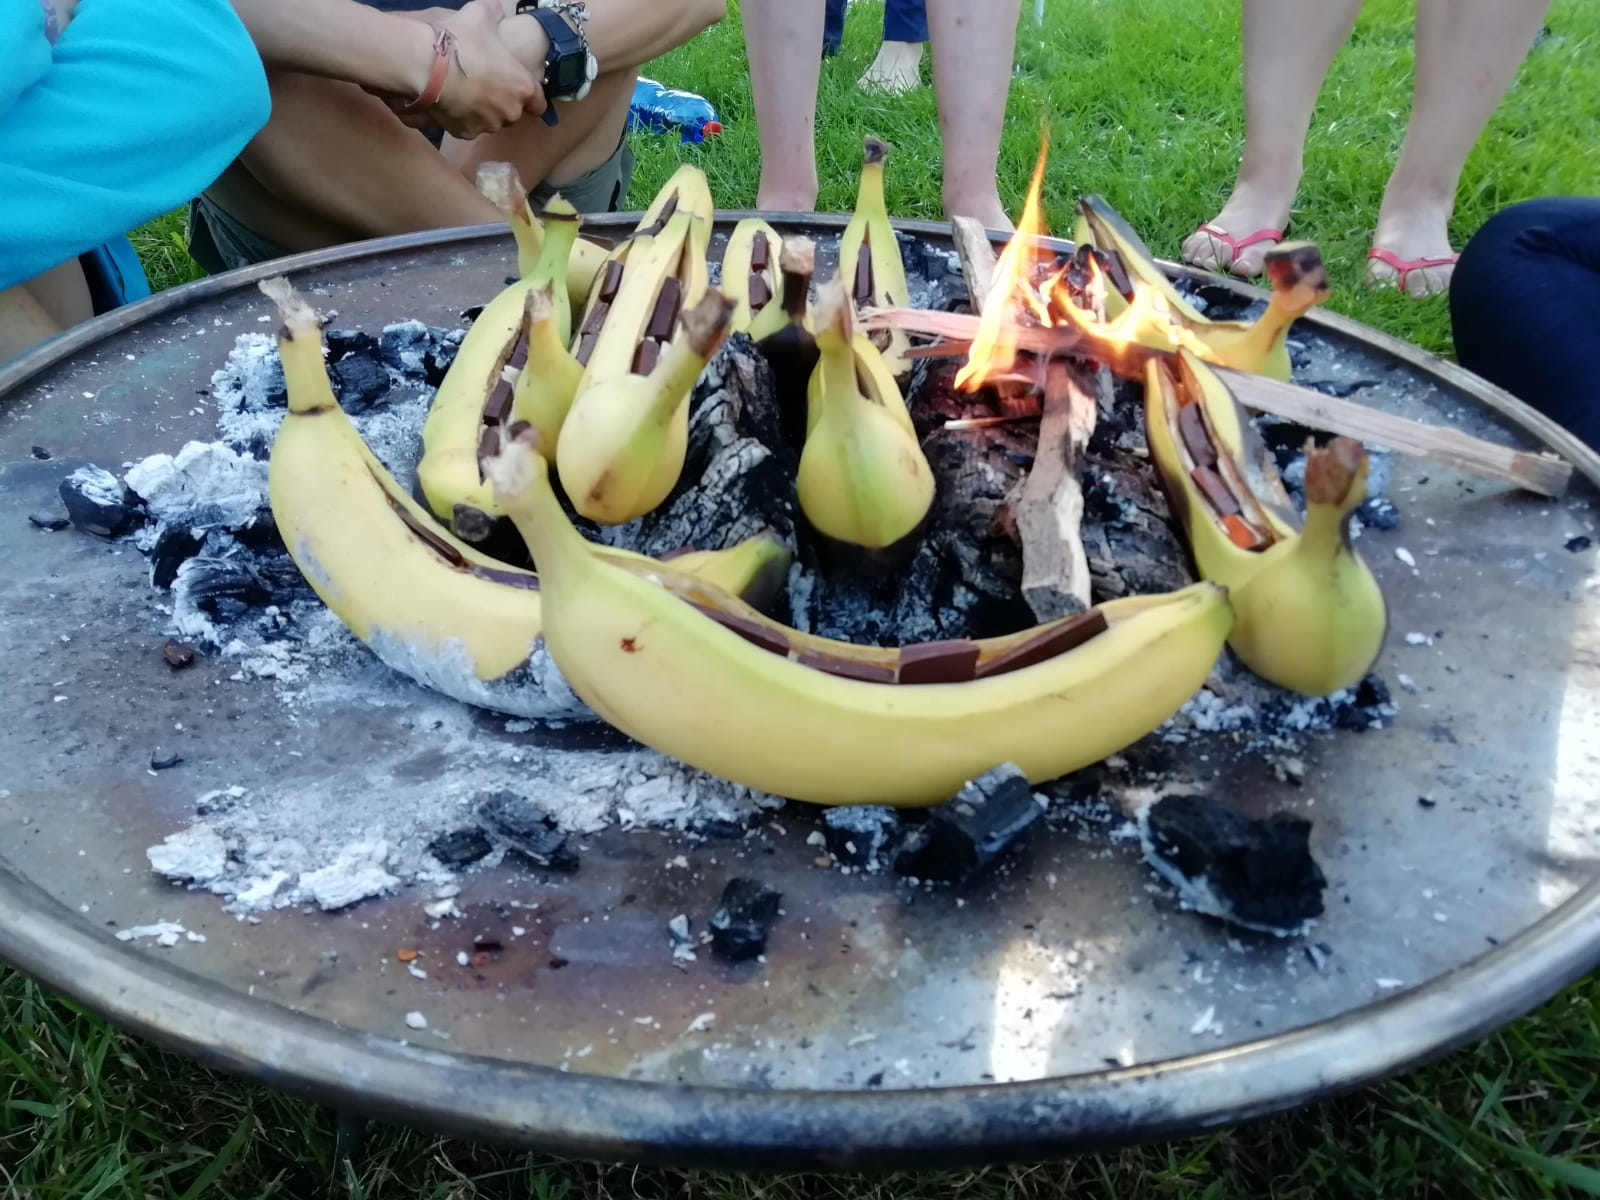 21 Camp Bananas